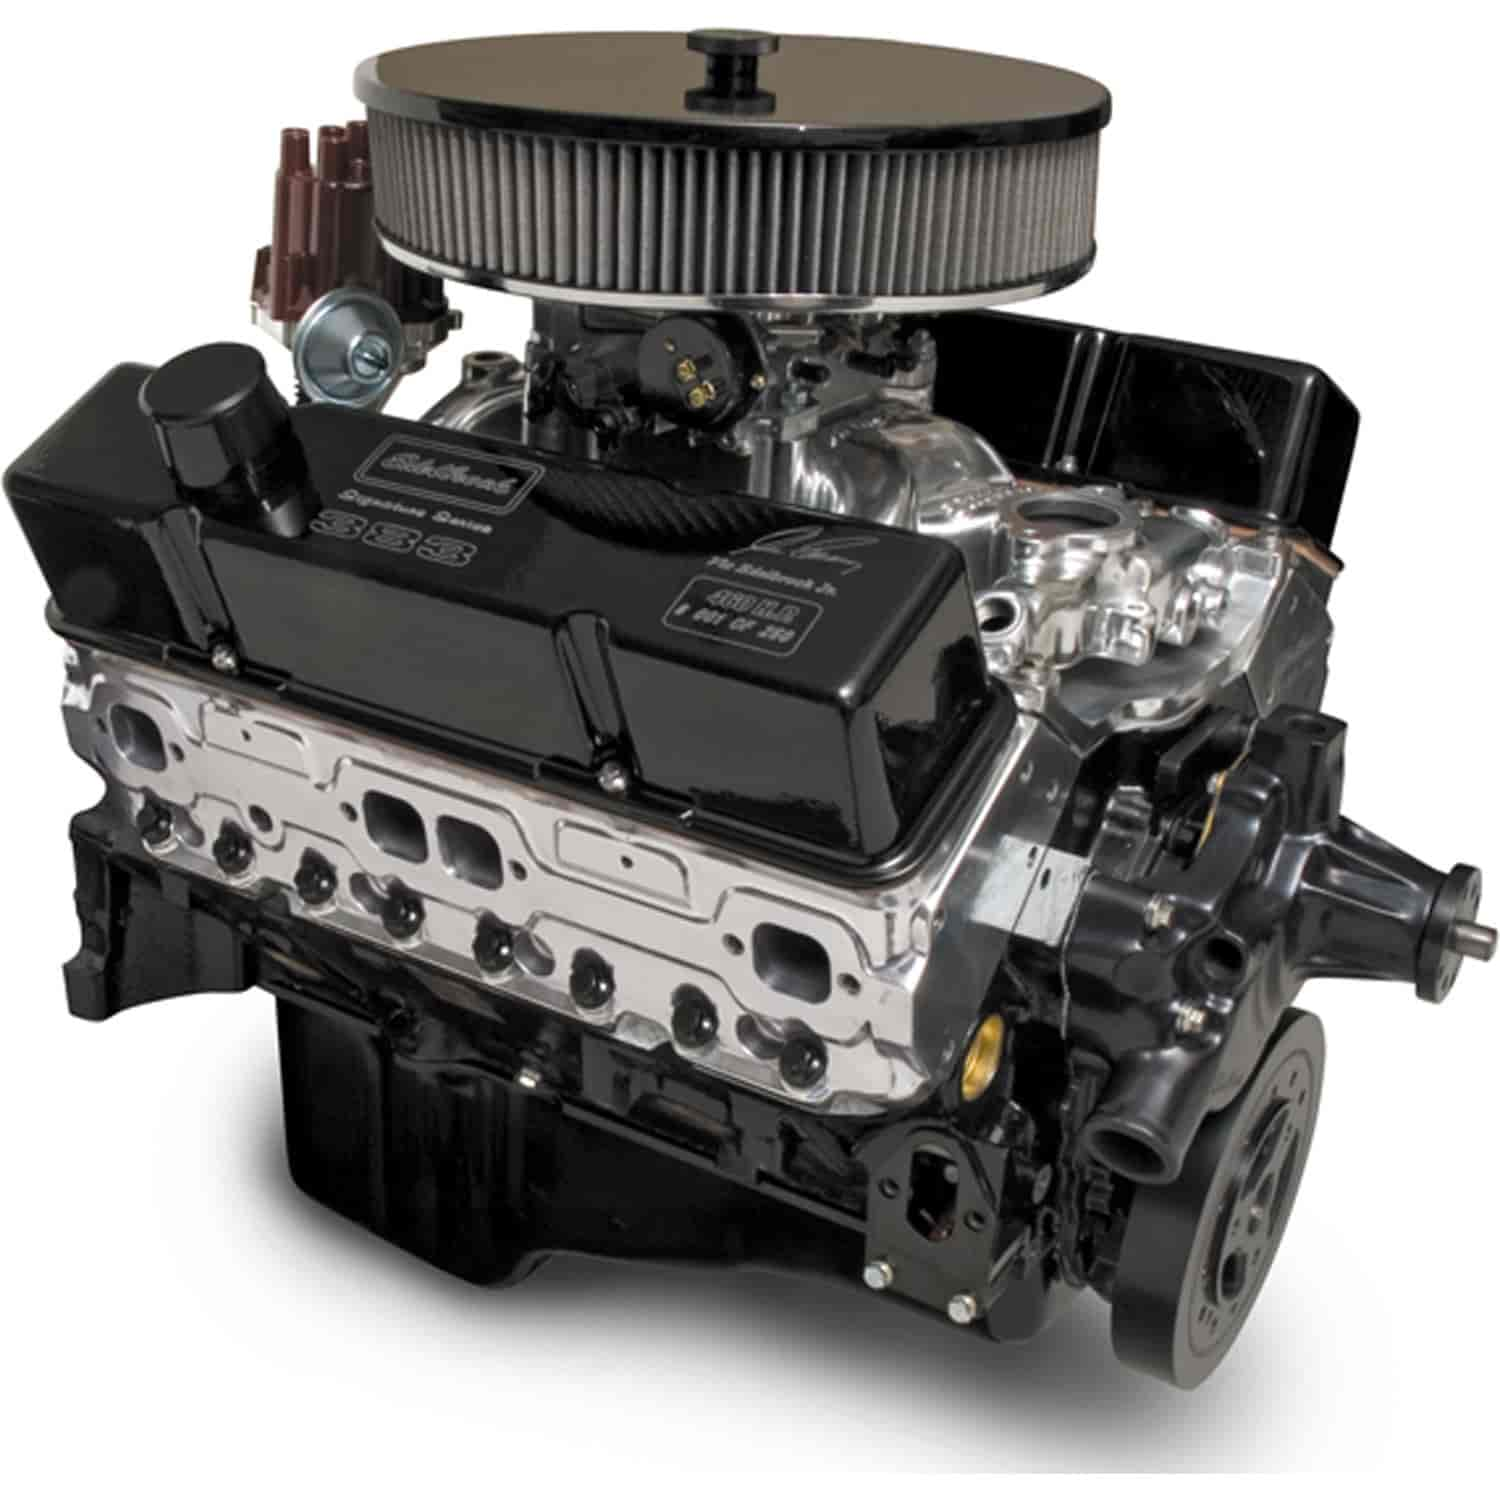 Edelbrock 46213 - Edelbrock Performer RPM E-Tec Signature Series Engine